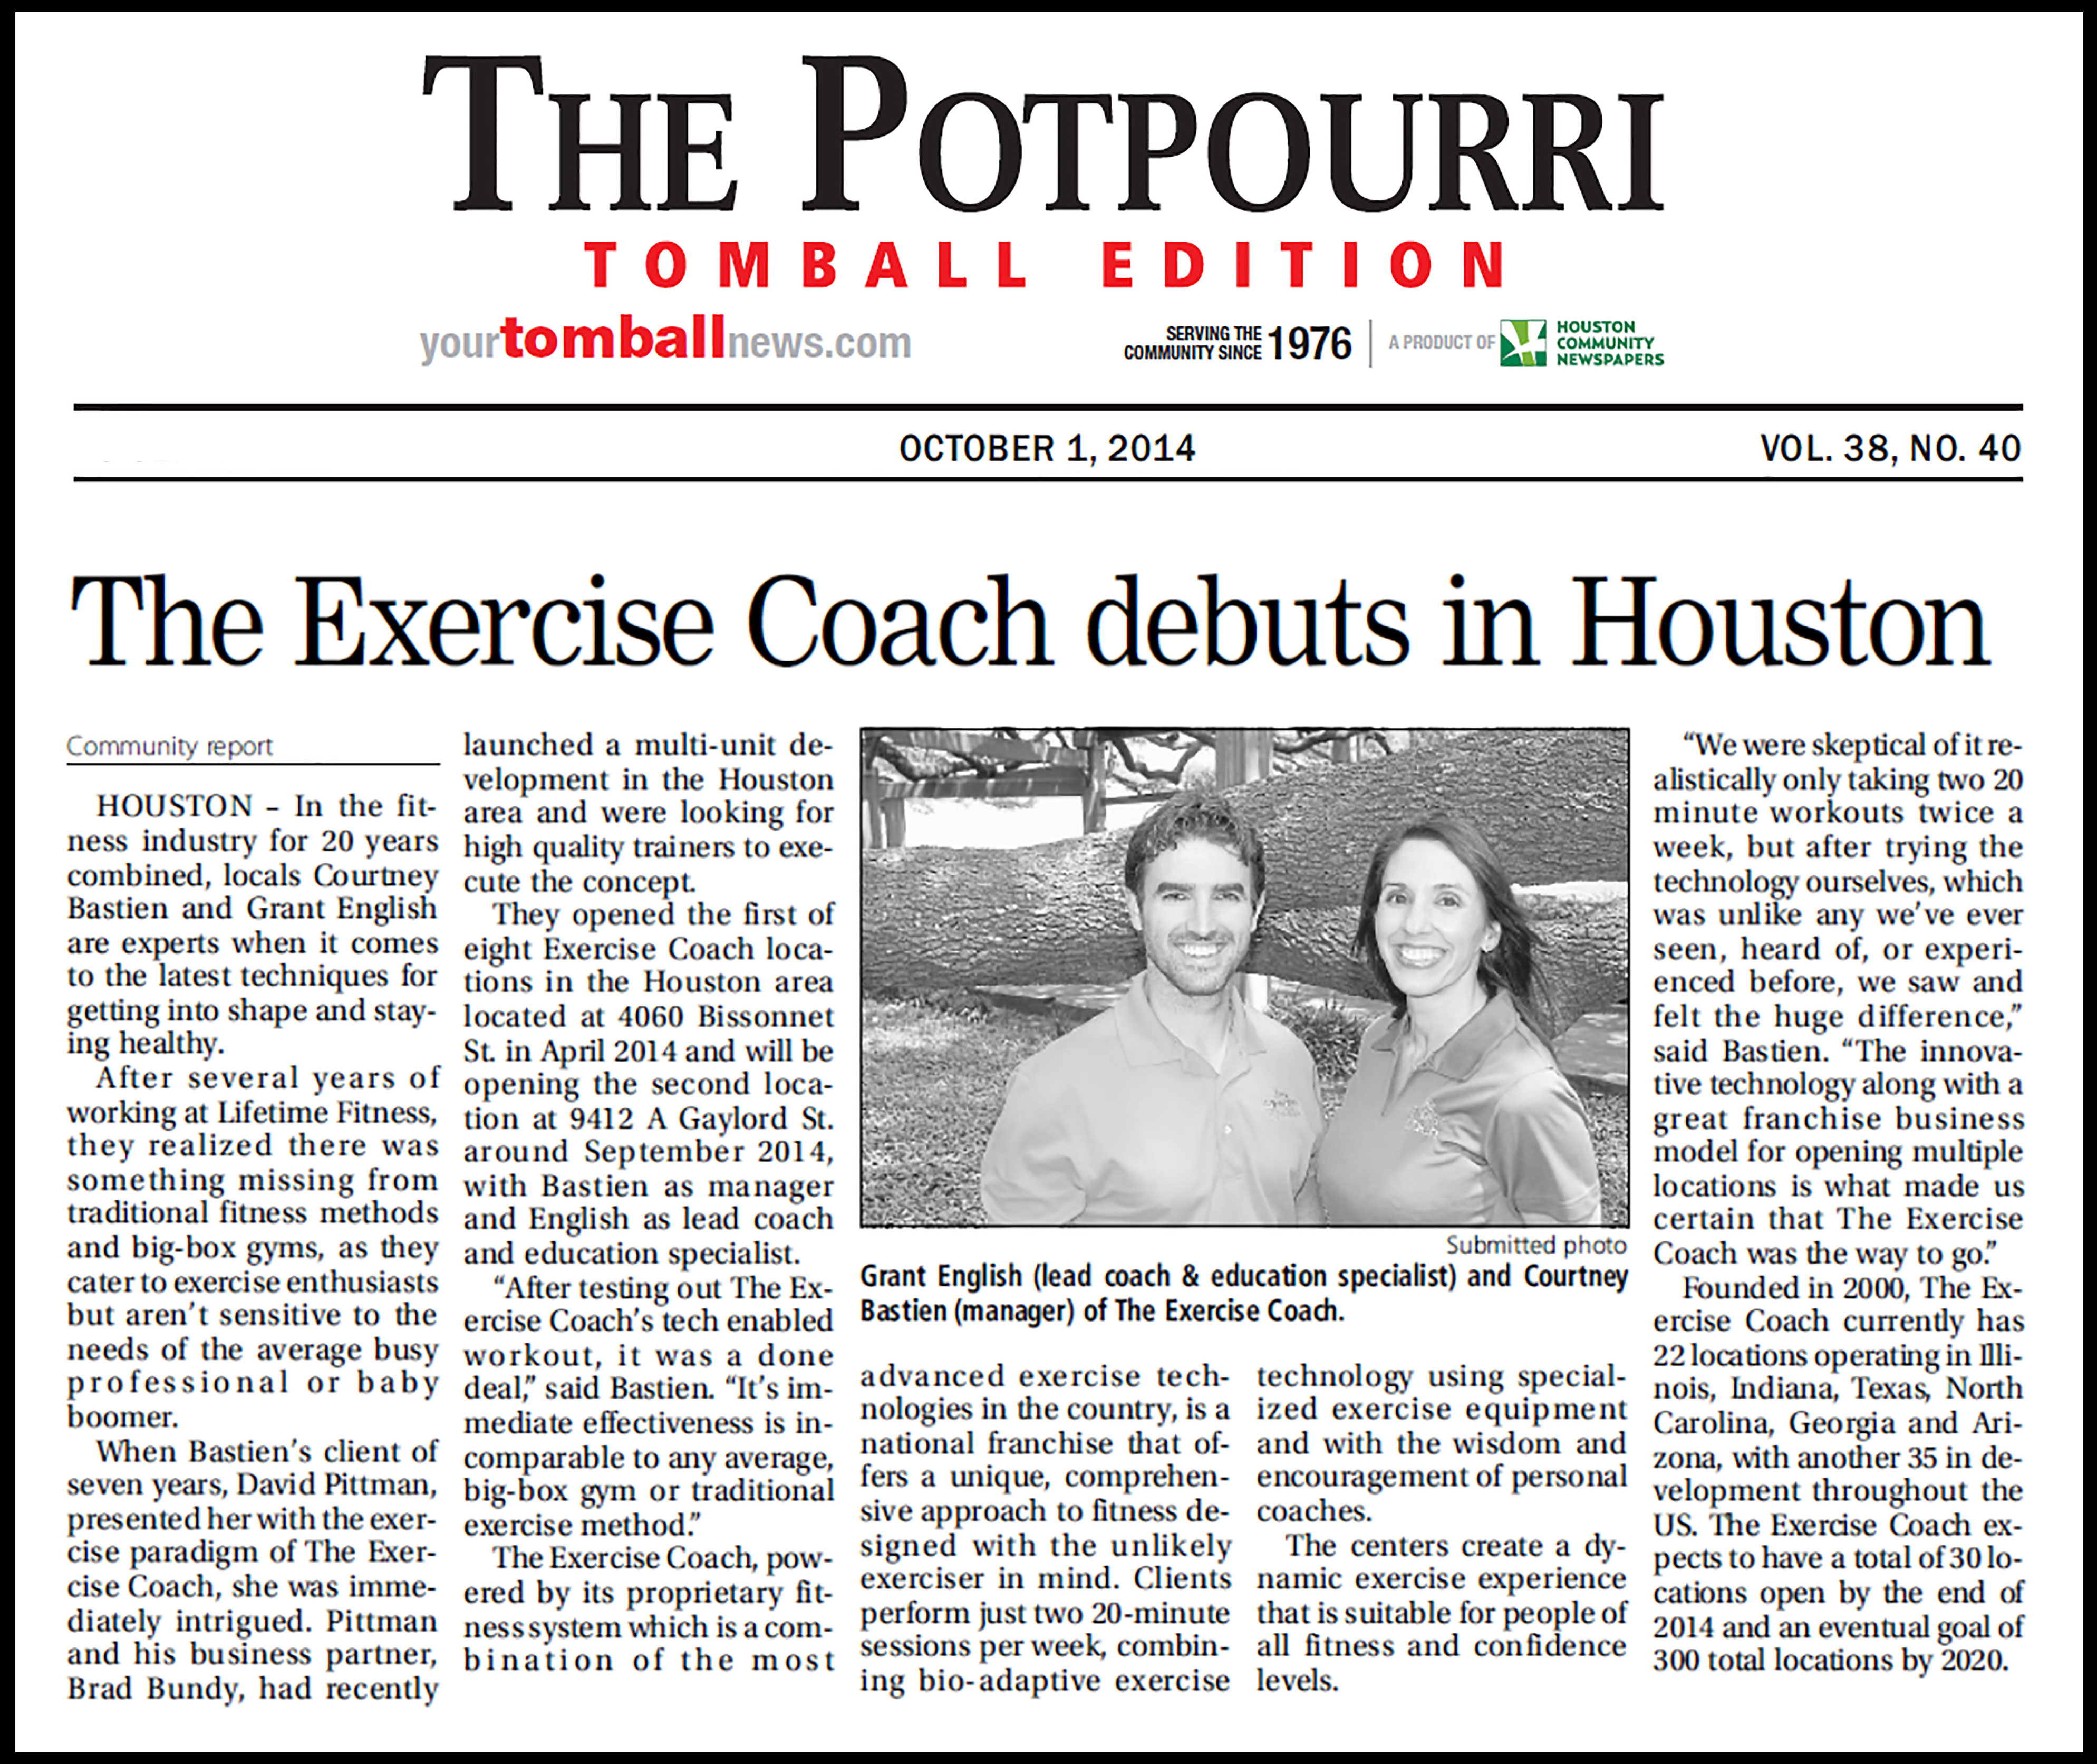 The Exercise Coach Houston Featured in The Potpourri